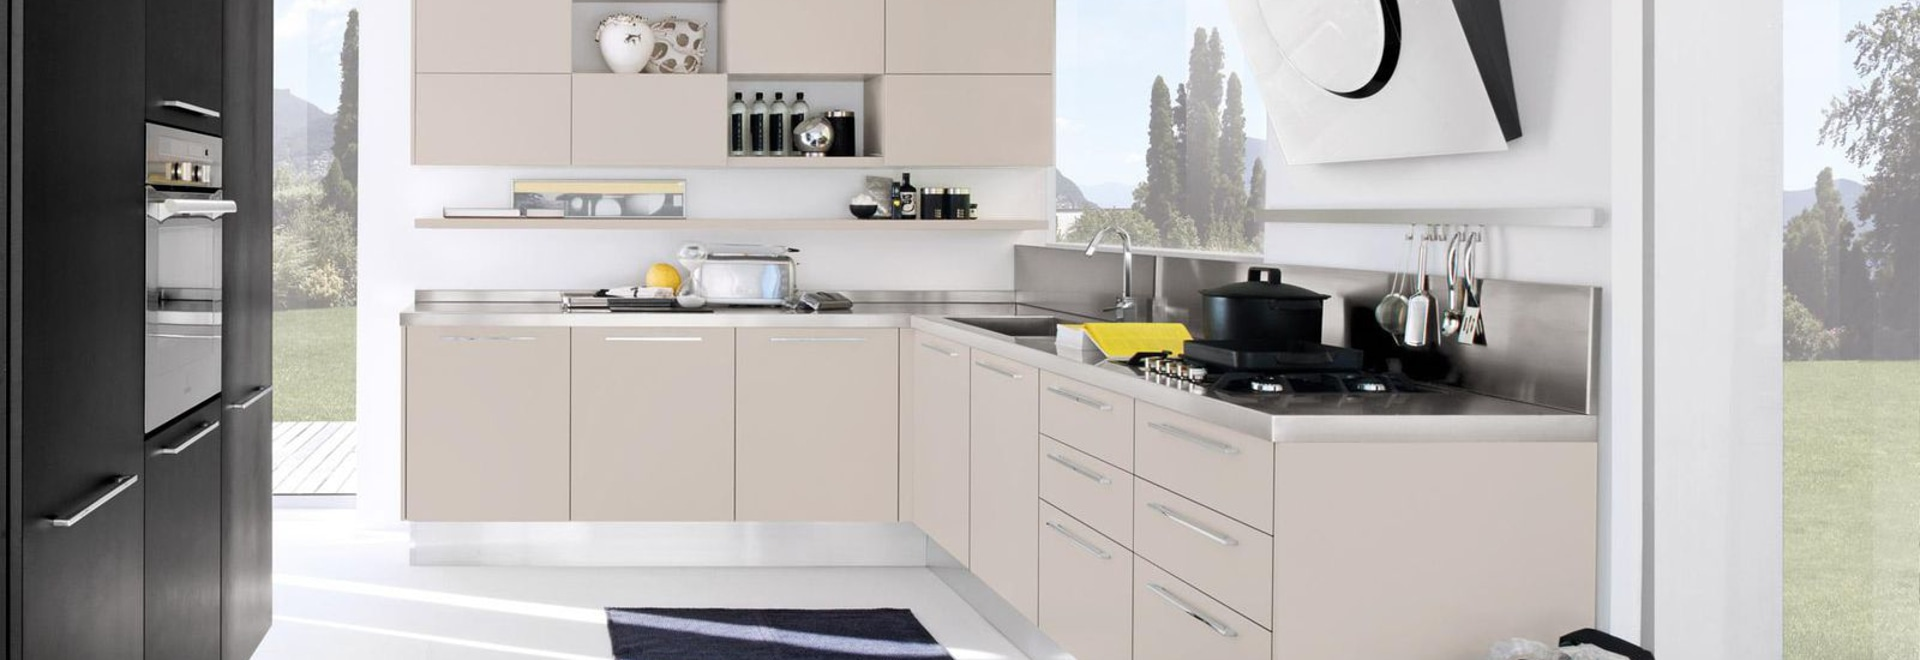 Cucine Lube Design New Contemporary Kitchen By Cucine Lube Cucine Lube